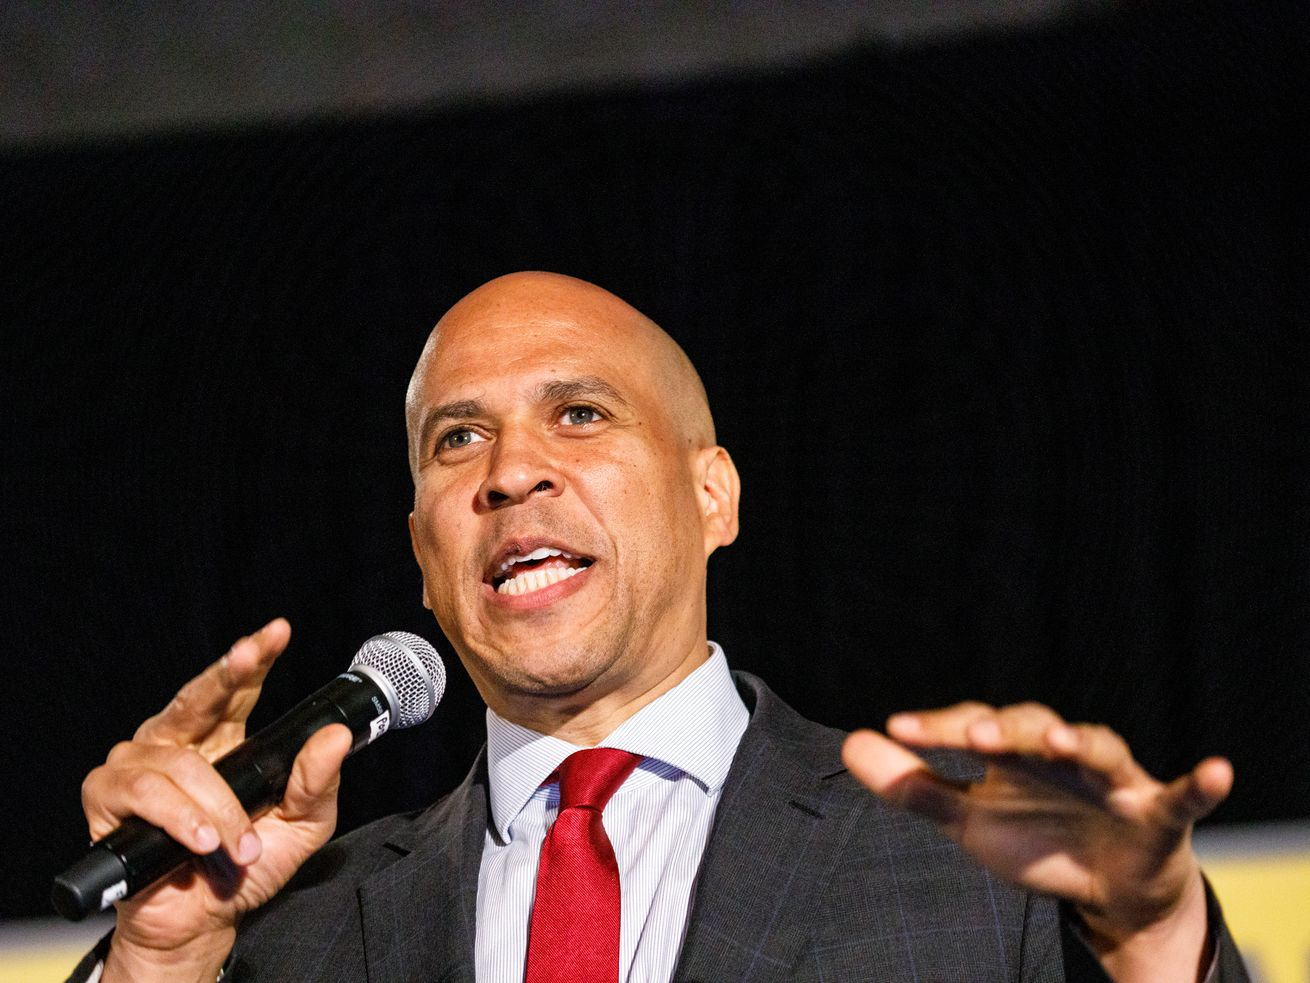 Democratic presidential candidate Sen. Cory Booker (D-NJ) speaks to a crowd at the African American Leadership Council on June 6, 2019 in Atlanta, Georgia.